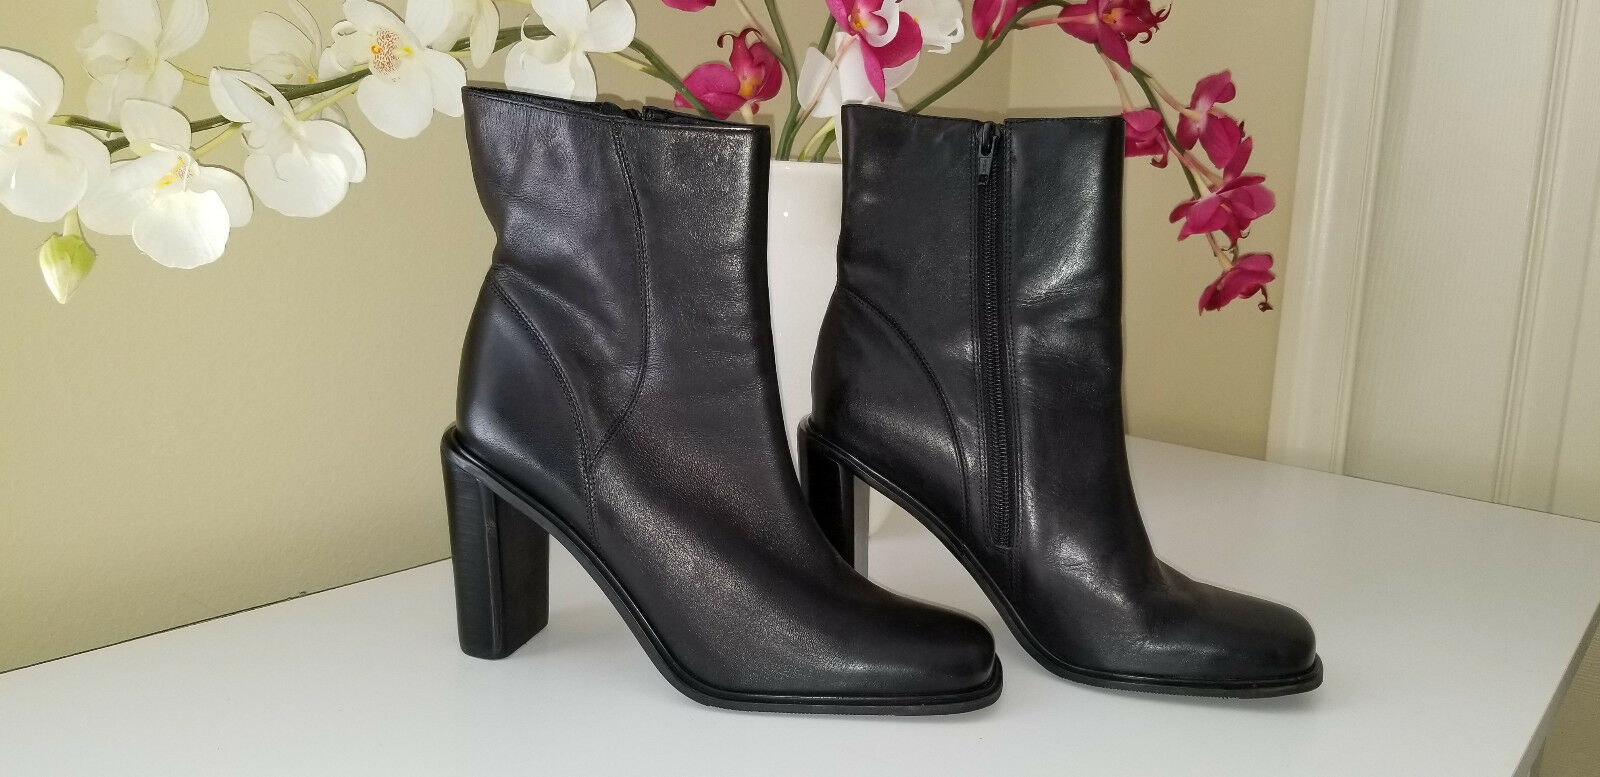 CONNIE Womens Black Leather Ankle Boots Chunky Heel Sz.7M made in Brazil